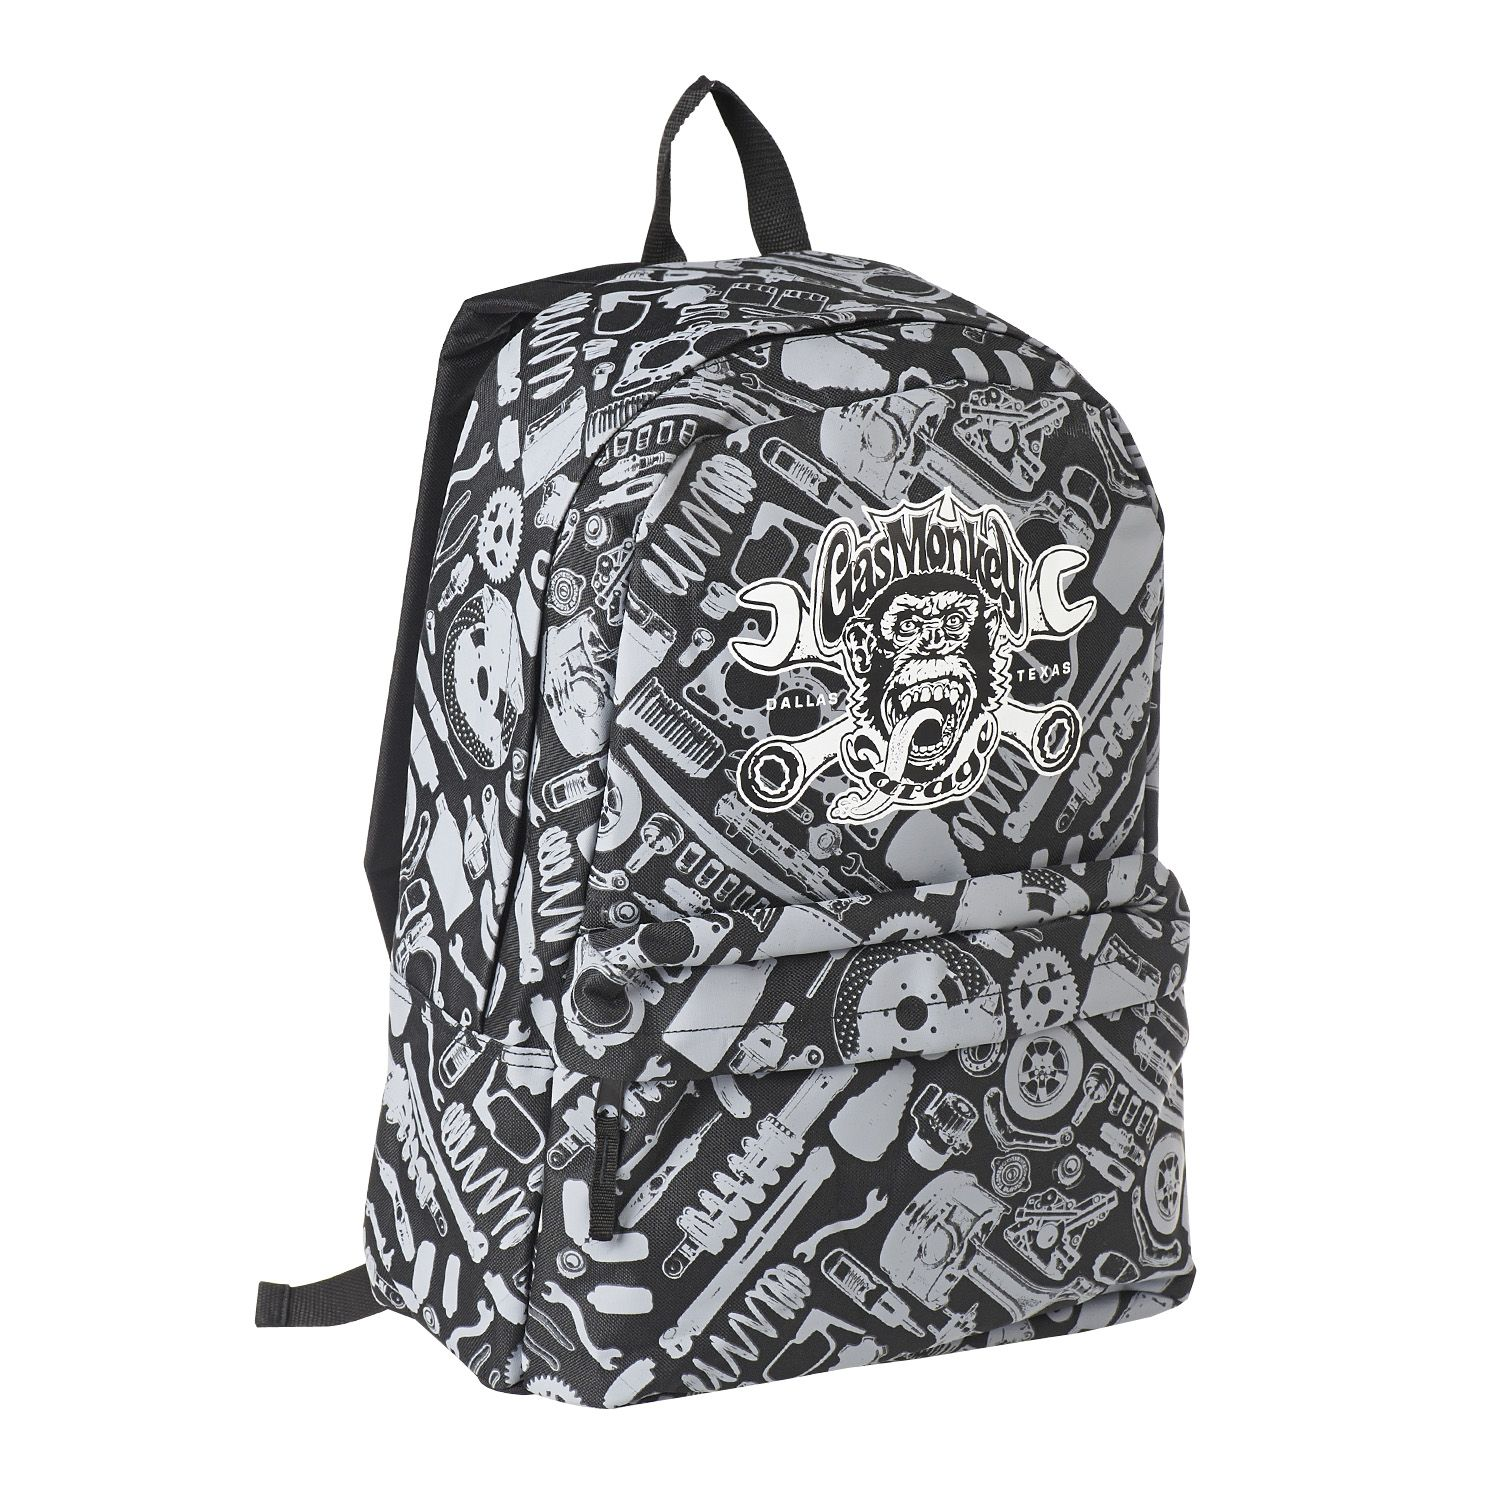 Gas monkey garage gas monkey pinterest garage monkey and gas - Gas Monkey Garage Backpack By Concept One Accessories Fastnloud